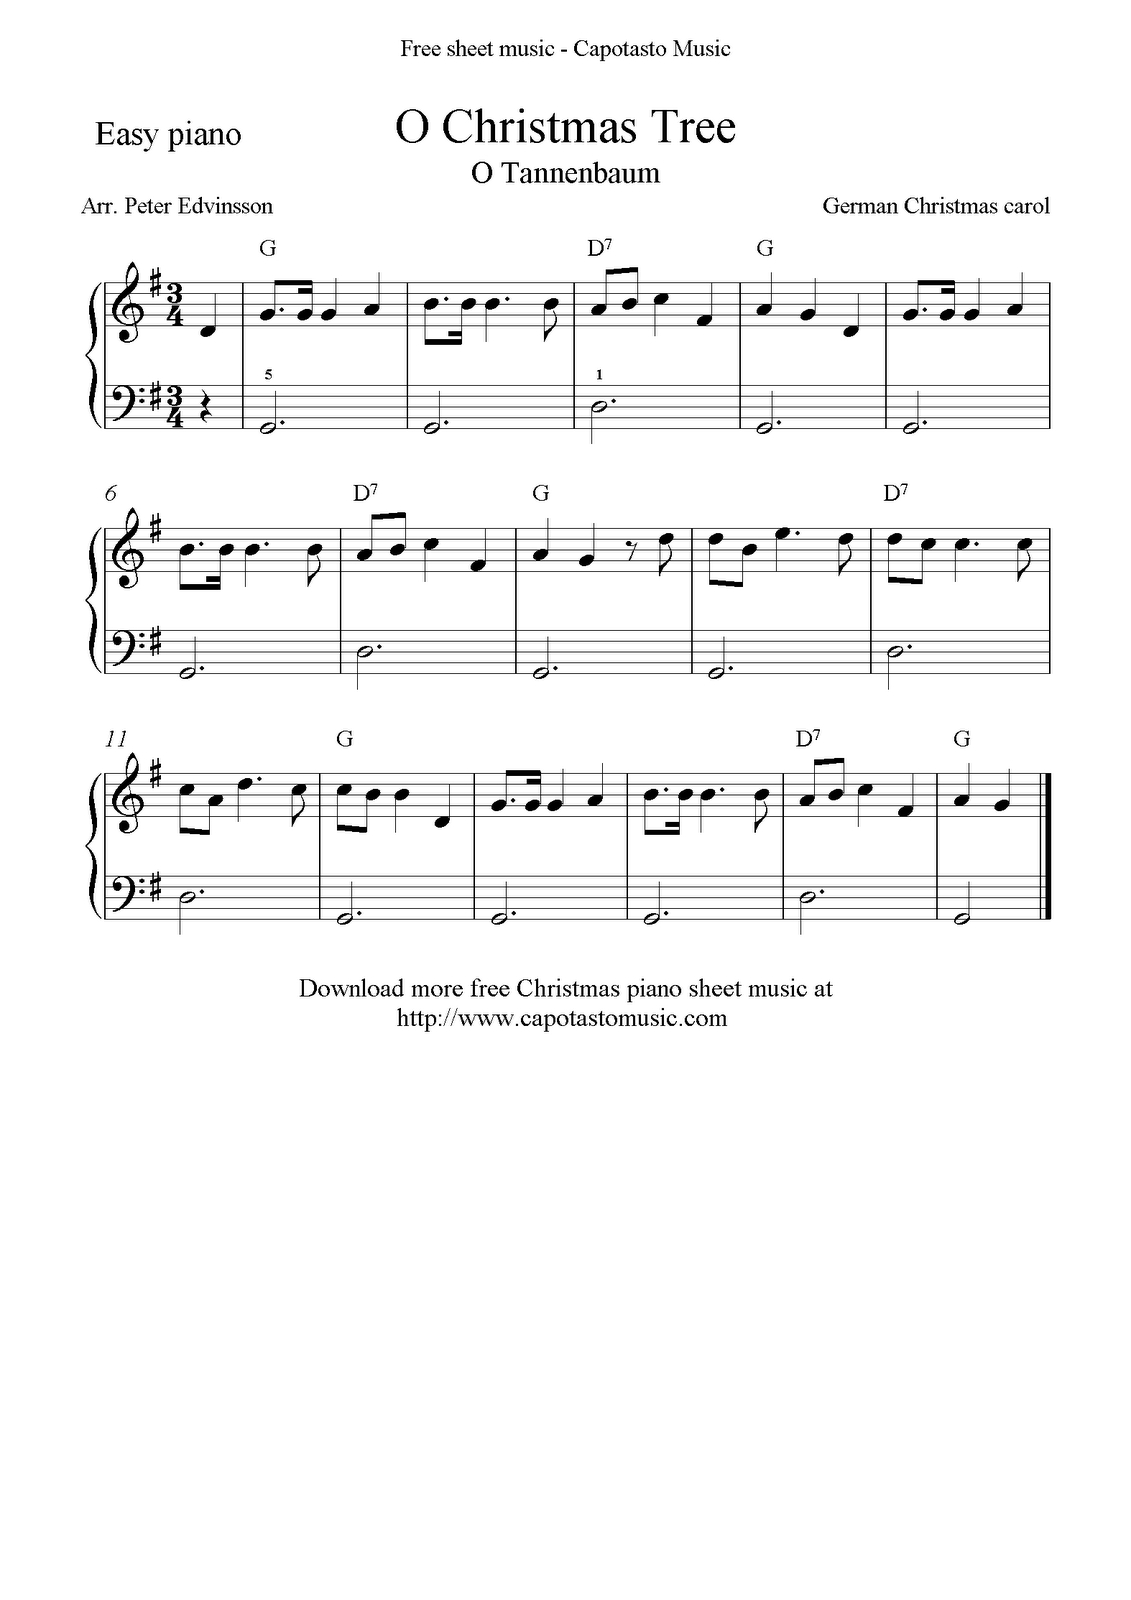 Free Christmas Sheet Music For Easy Piano Solo, O Christmas Tree - Christmas Music For Piano Free Printable